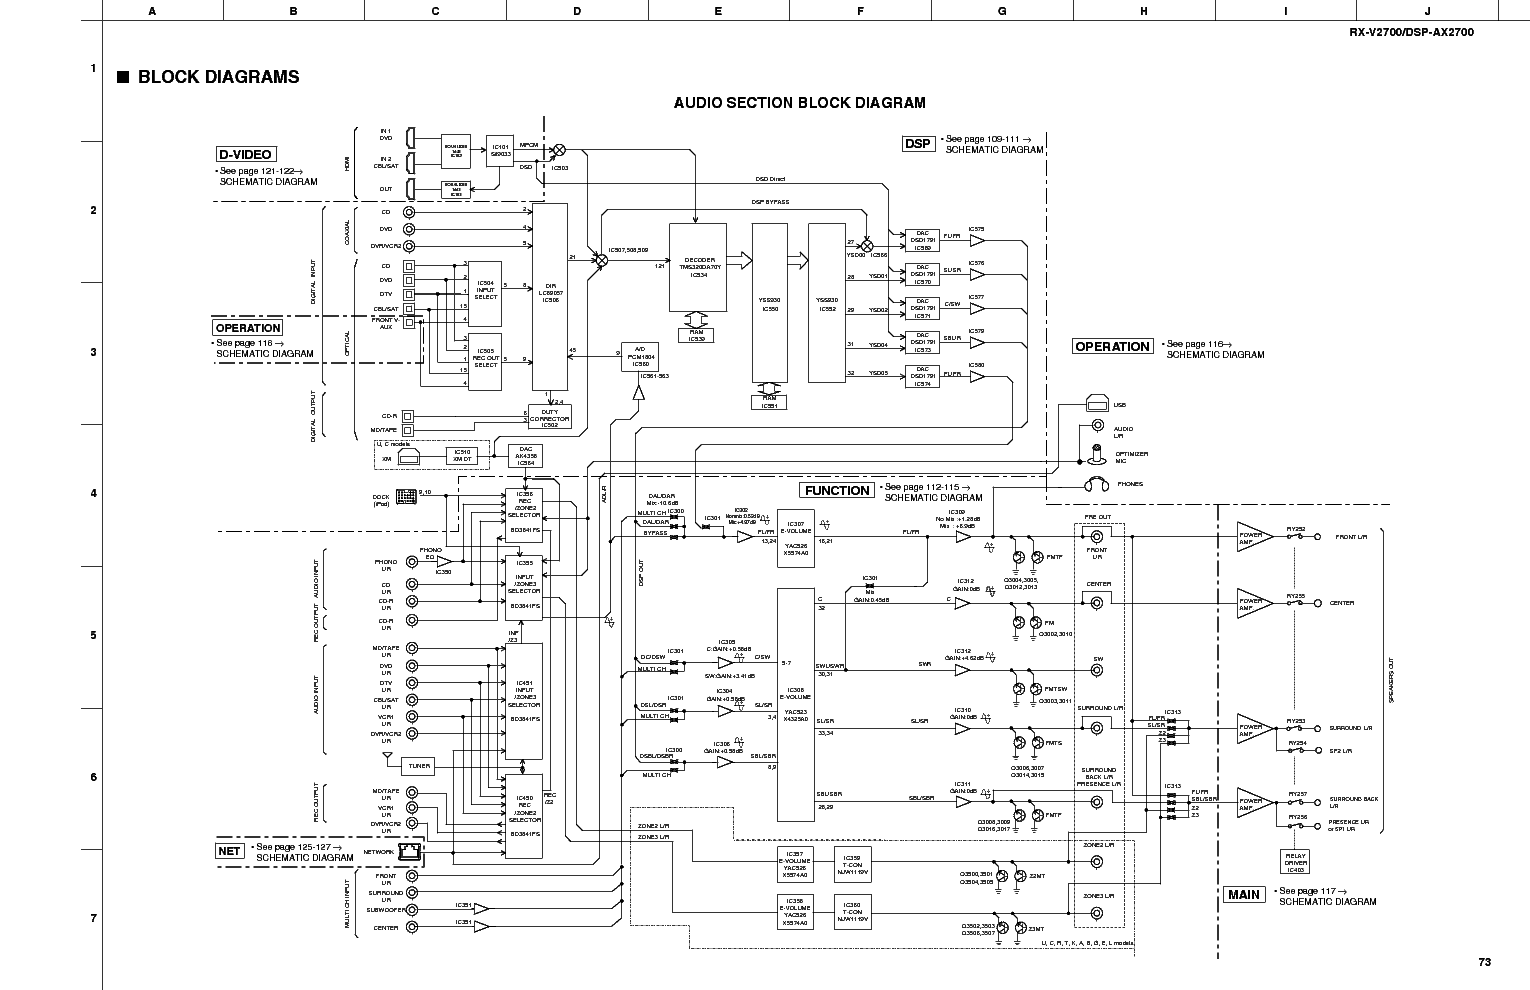 yamaha_rx v2700_dsp ax2700_sch.pdf_1 yamaha rx v2700 dsp ax2700 sch service manual download, schematics yamaha schematic diagram at nearapp.co